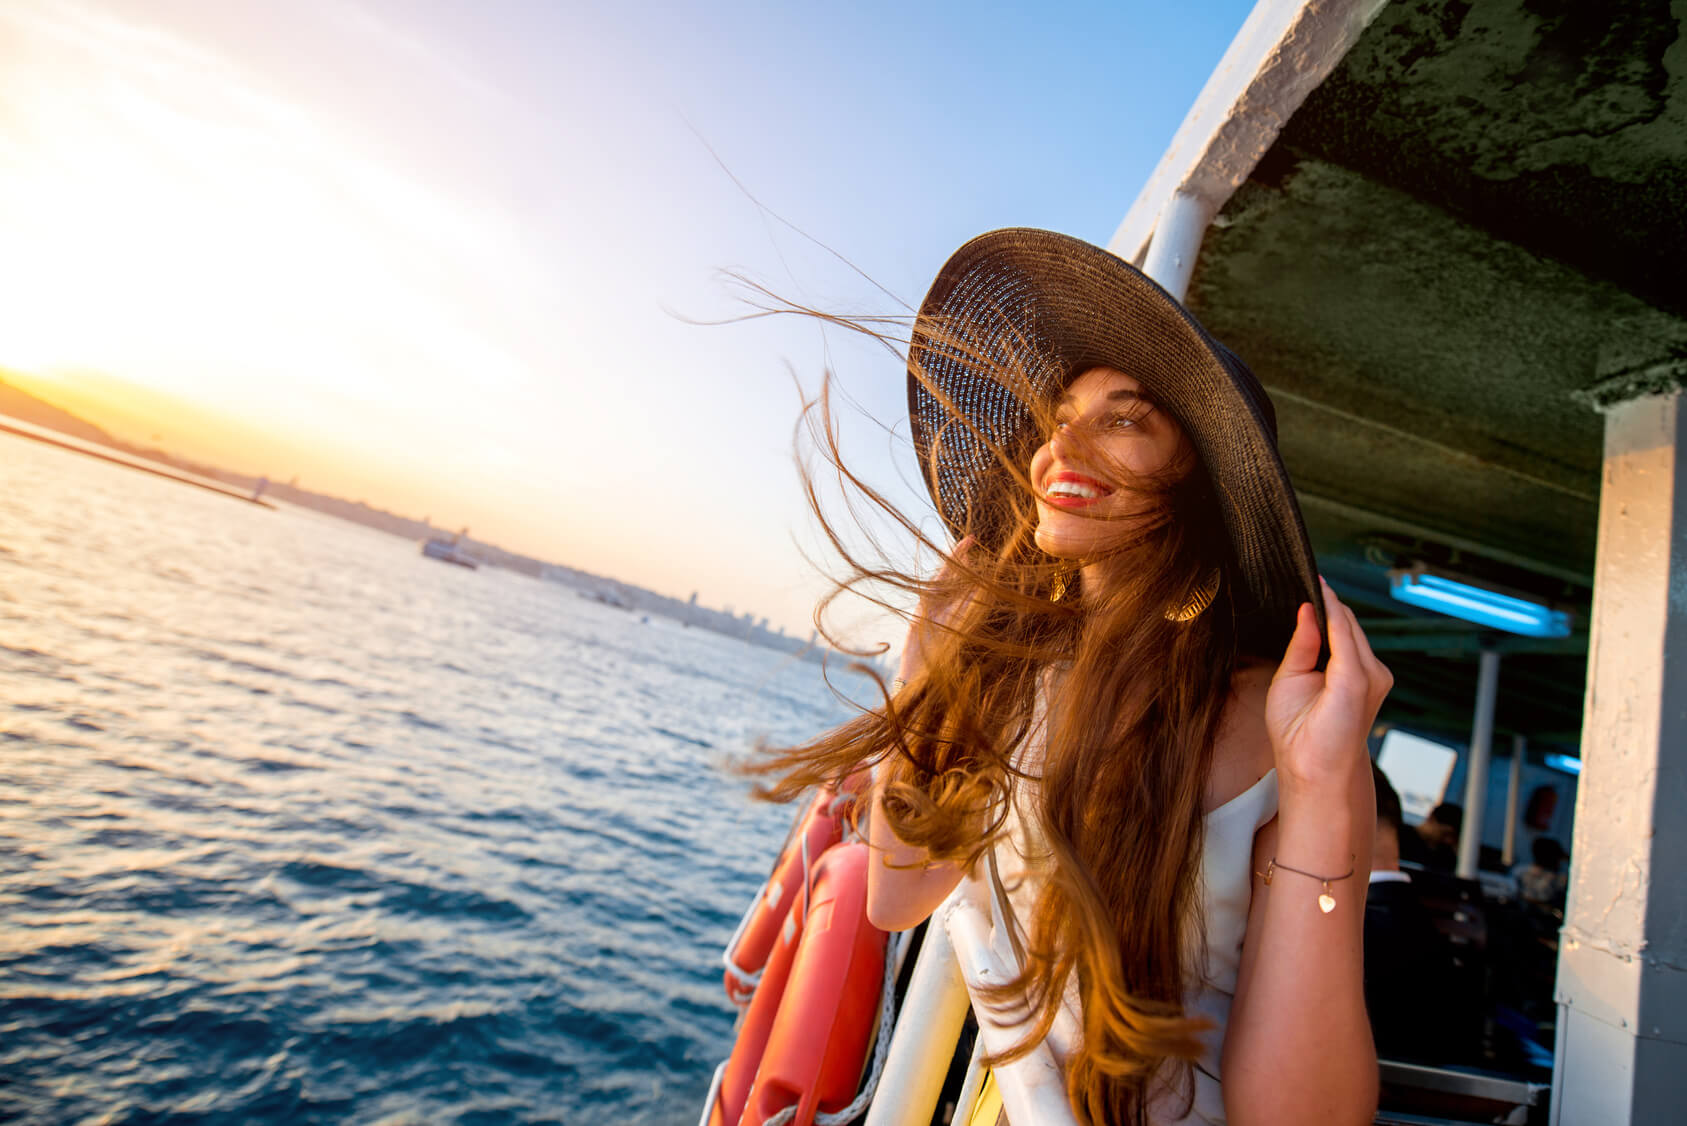 Singles Trips - Travel - Cruises Singles Travel